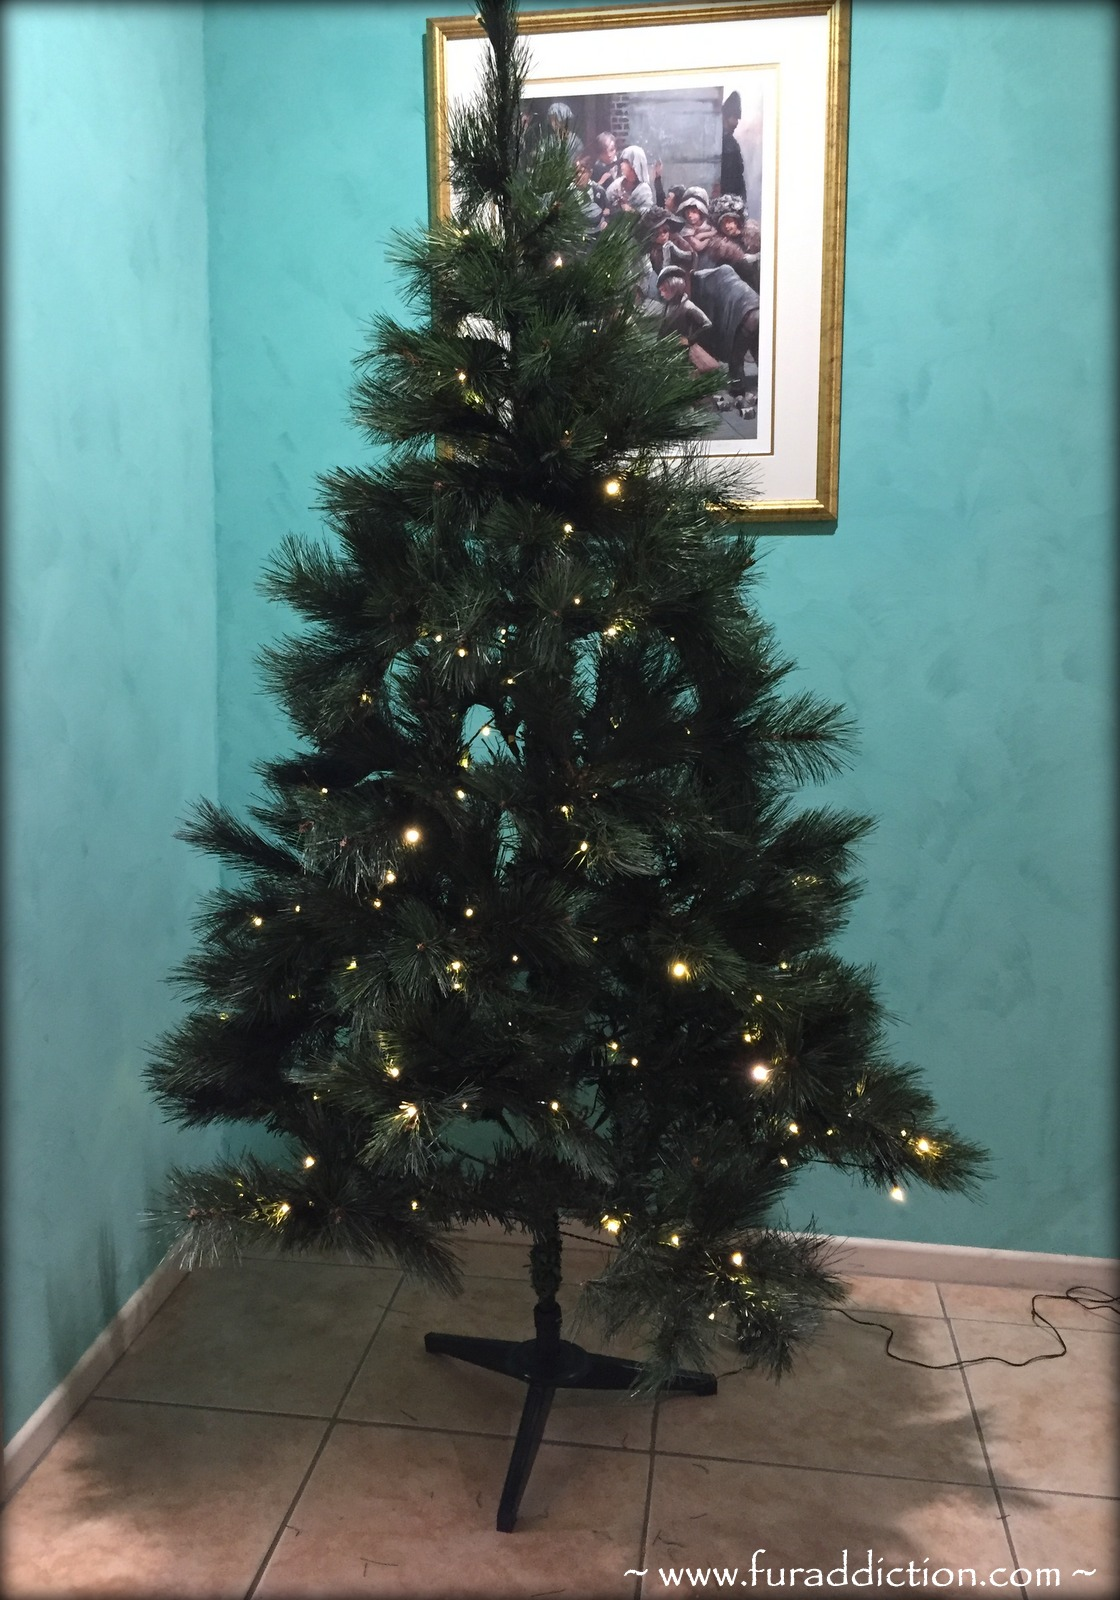 so this is how our very basic kmart christmas tree looks without the skirt its not so bad but there are a few cables dangling below and the trees feet - Teal Christmas Tree Skirt